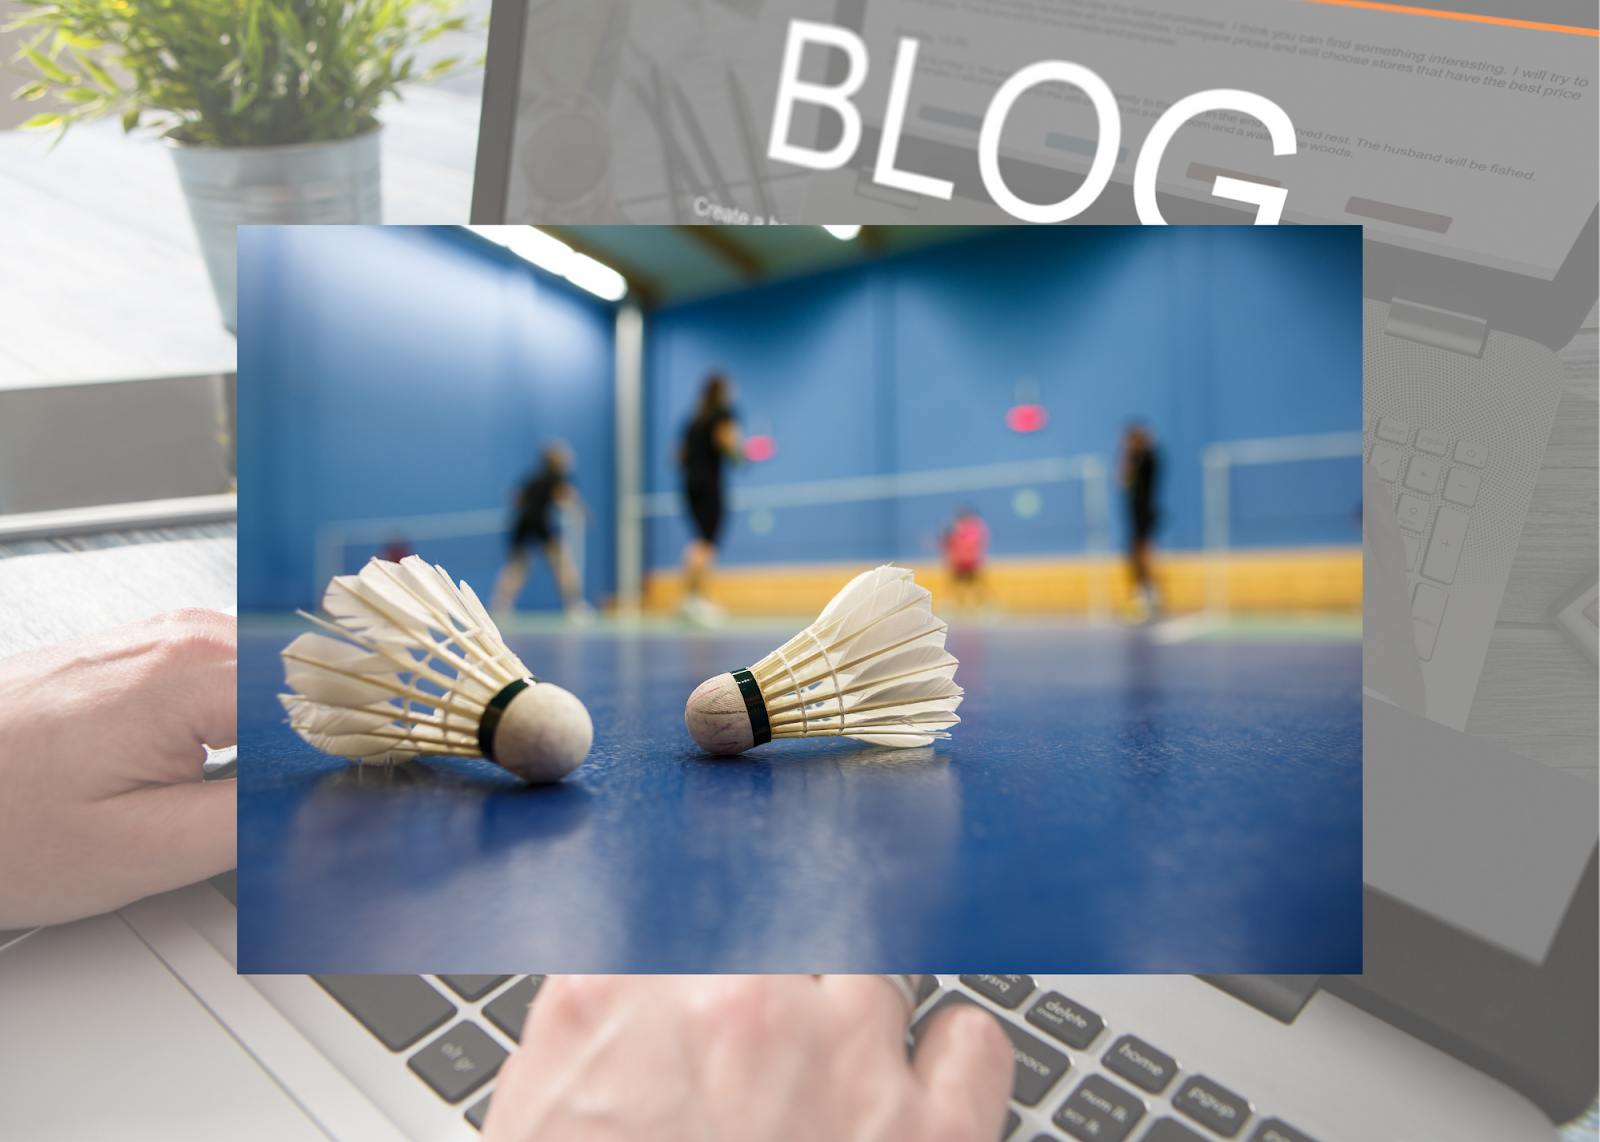 """A badminton court image with two shuttlecocks overlays a transparent background of hands on a keyboard with the word """"BLOG"""" on the computer screen."""